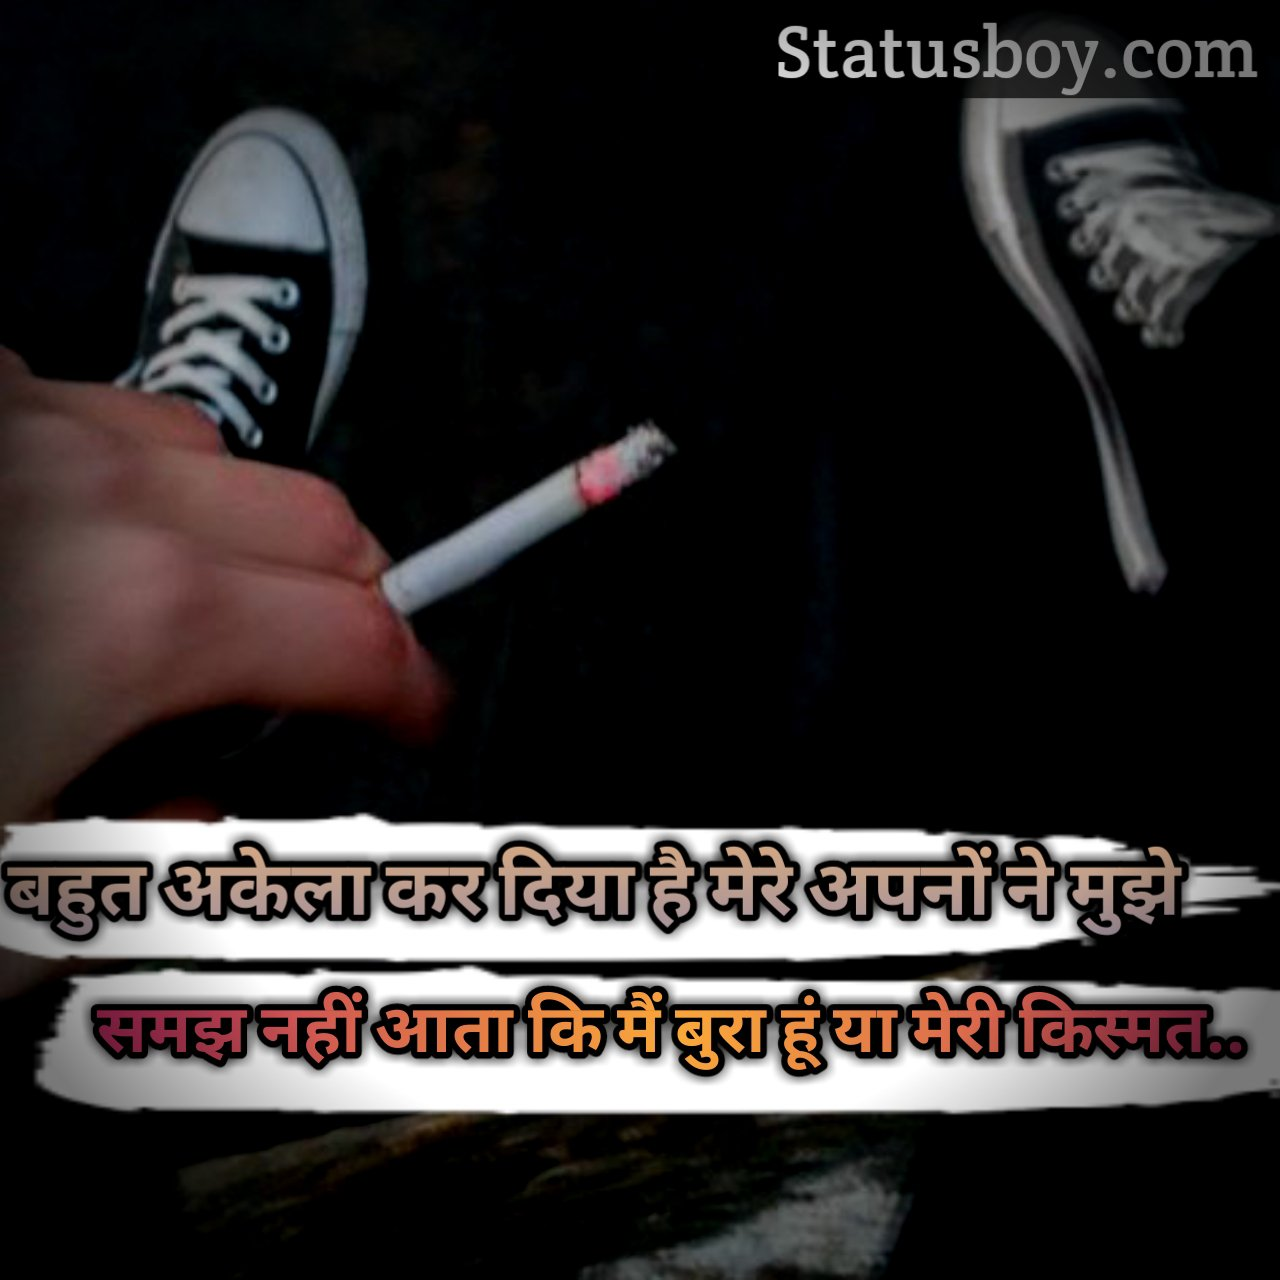 Sad Status In Hindi Font For Love